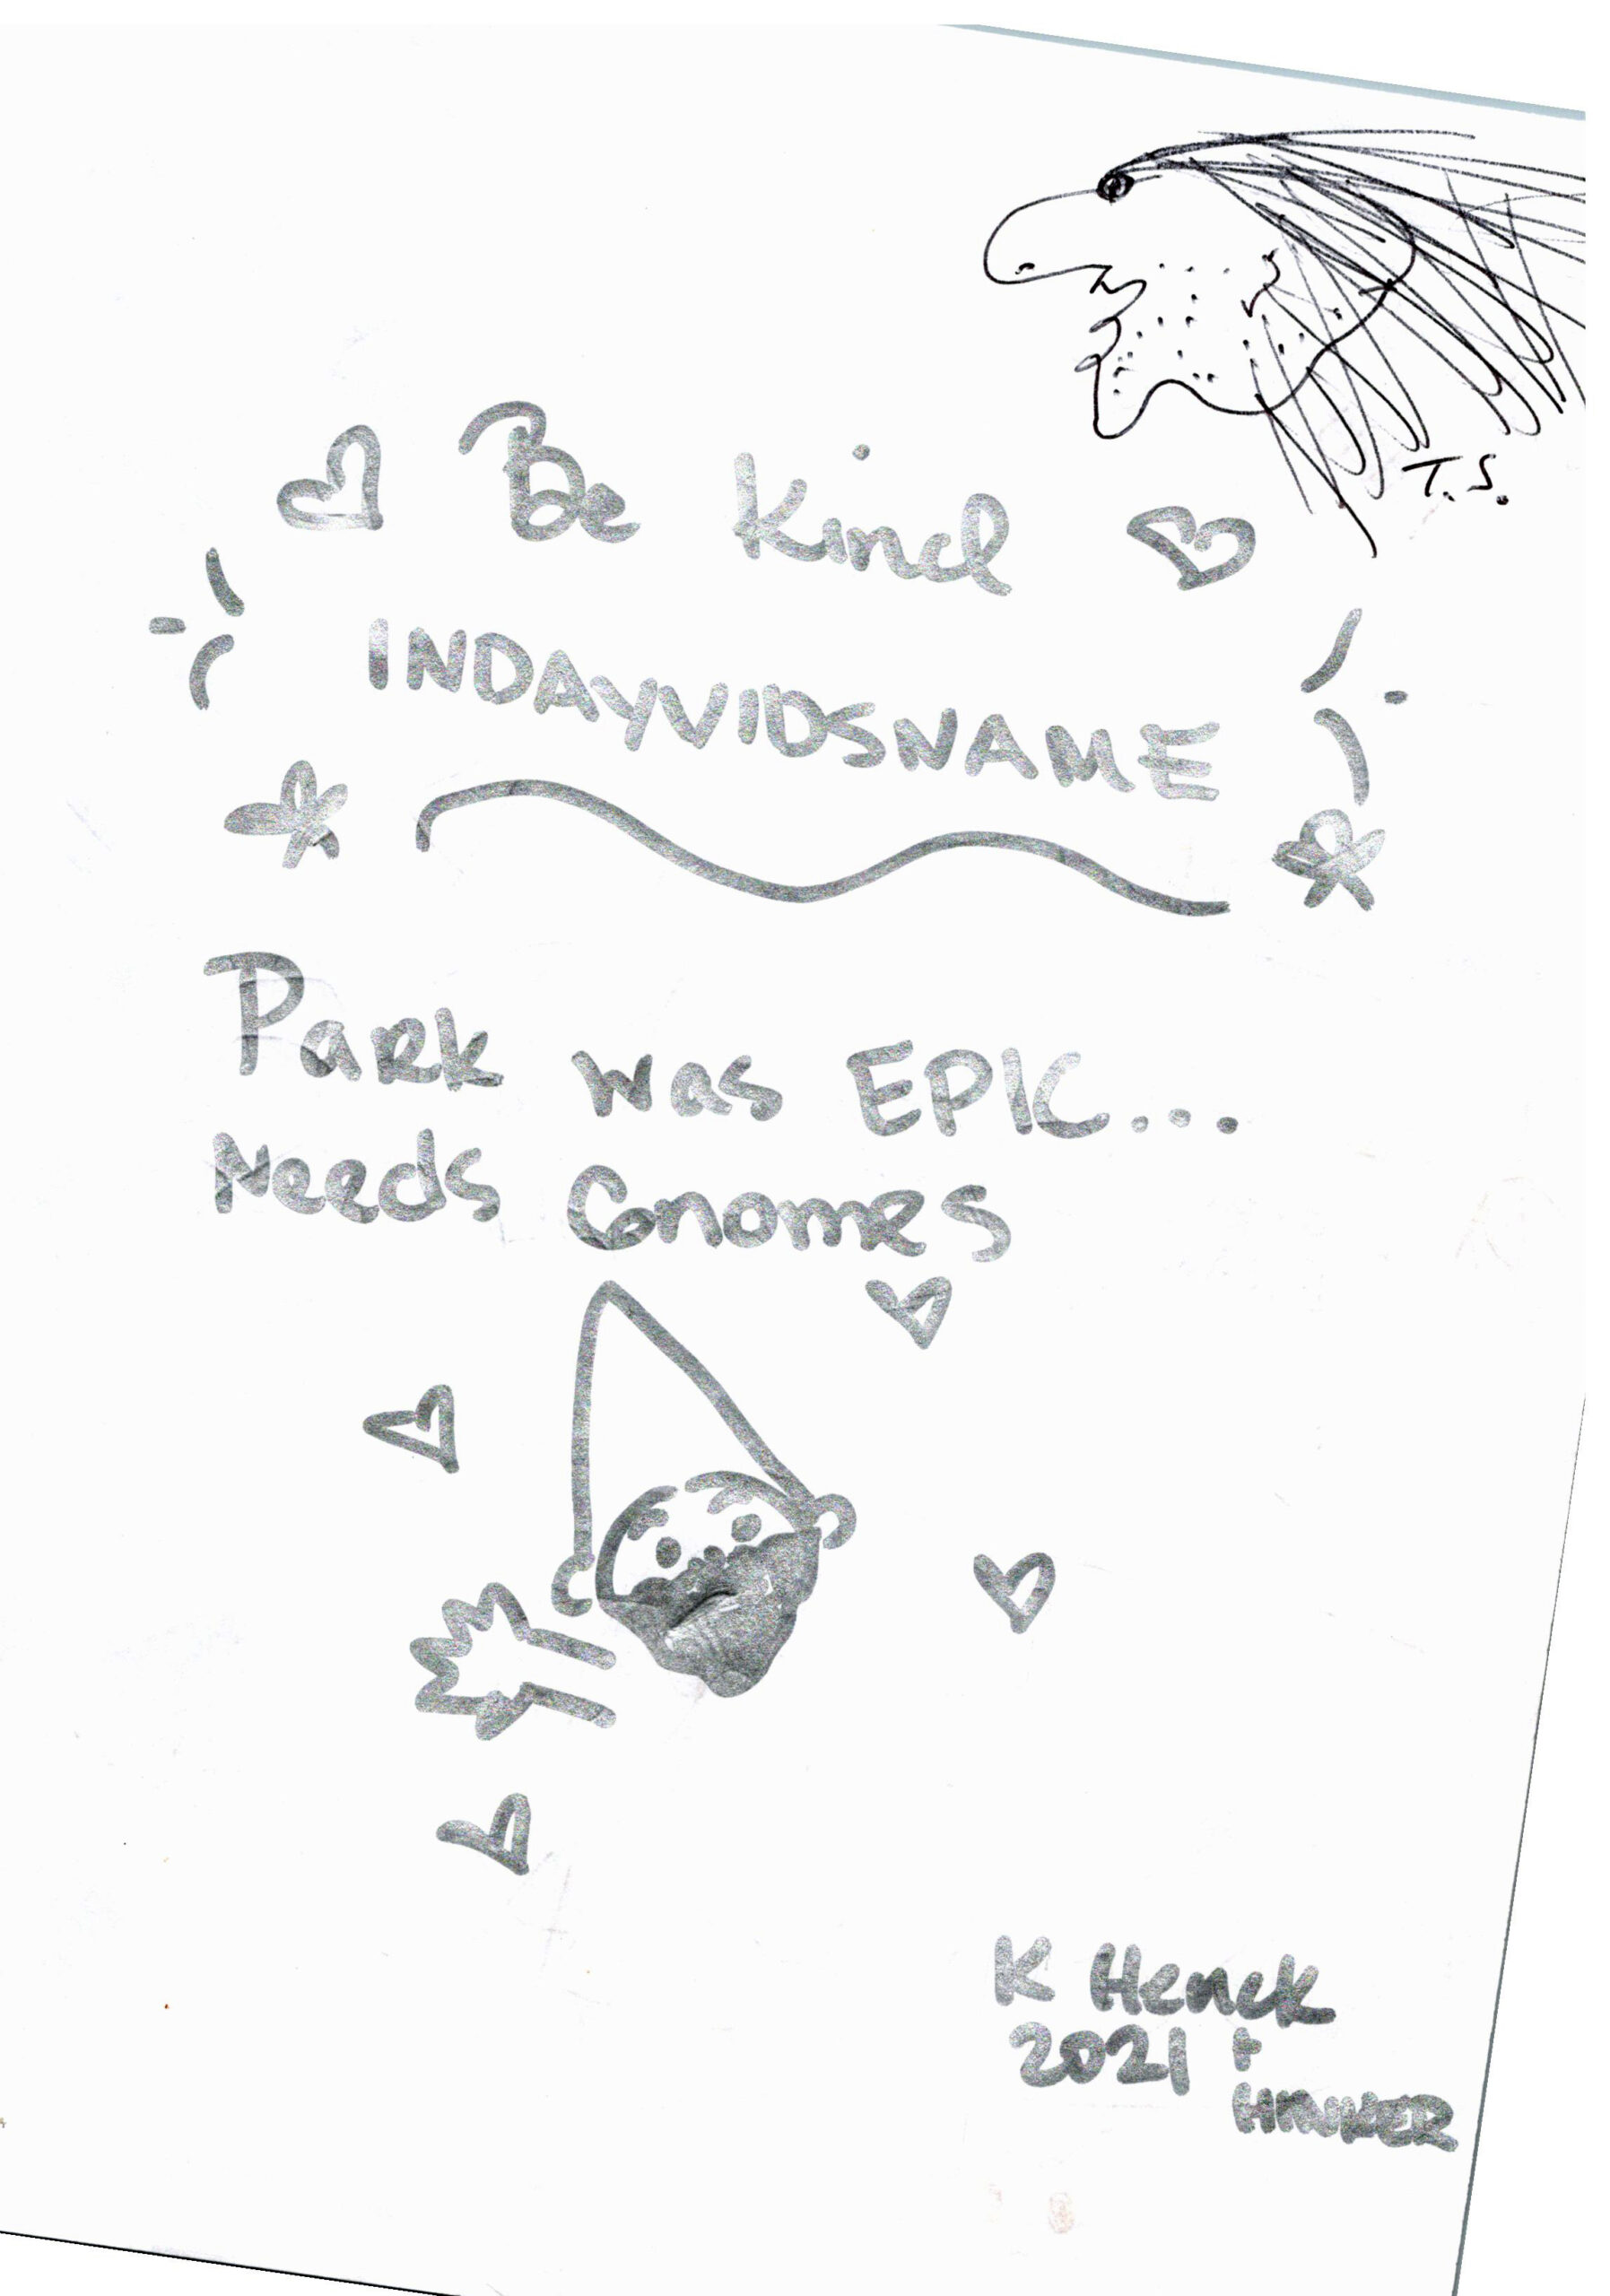 Be kind, Park was epic, Needs gnomes